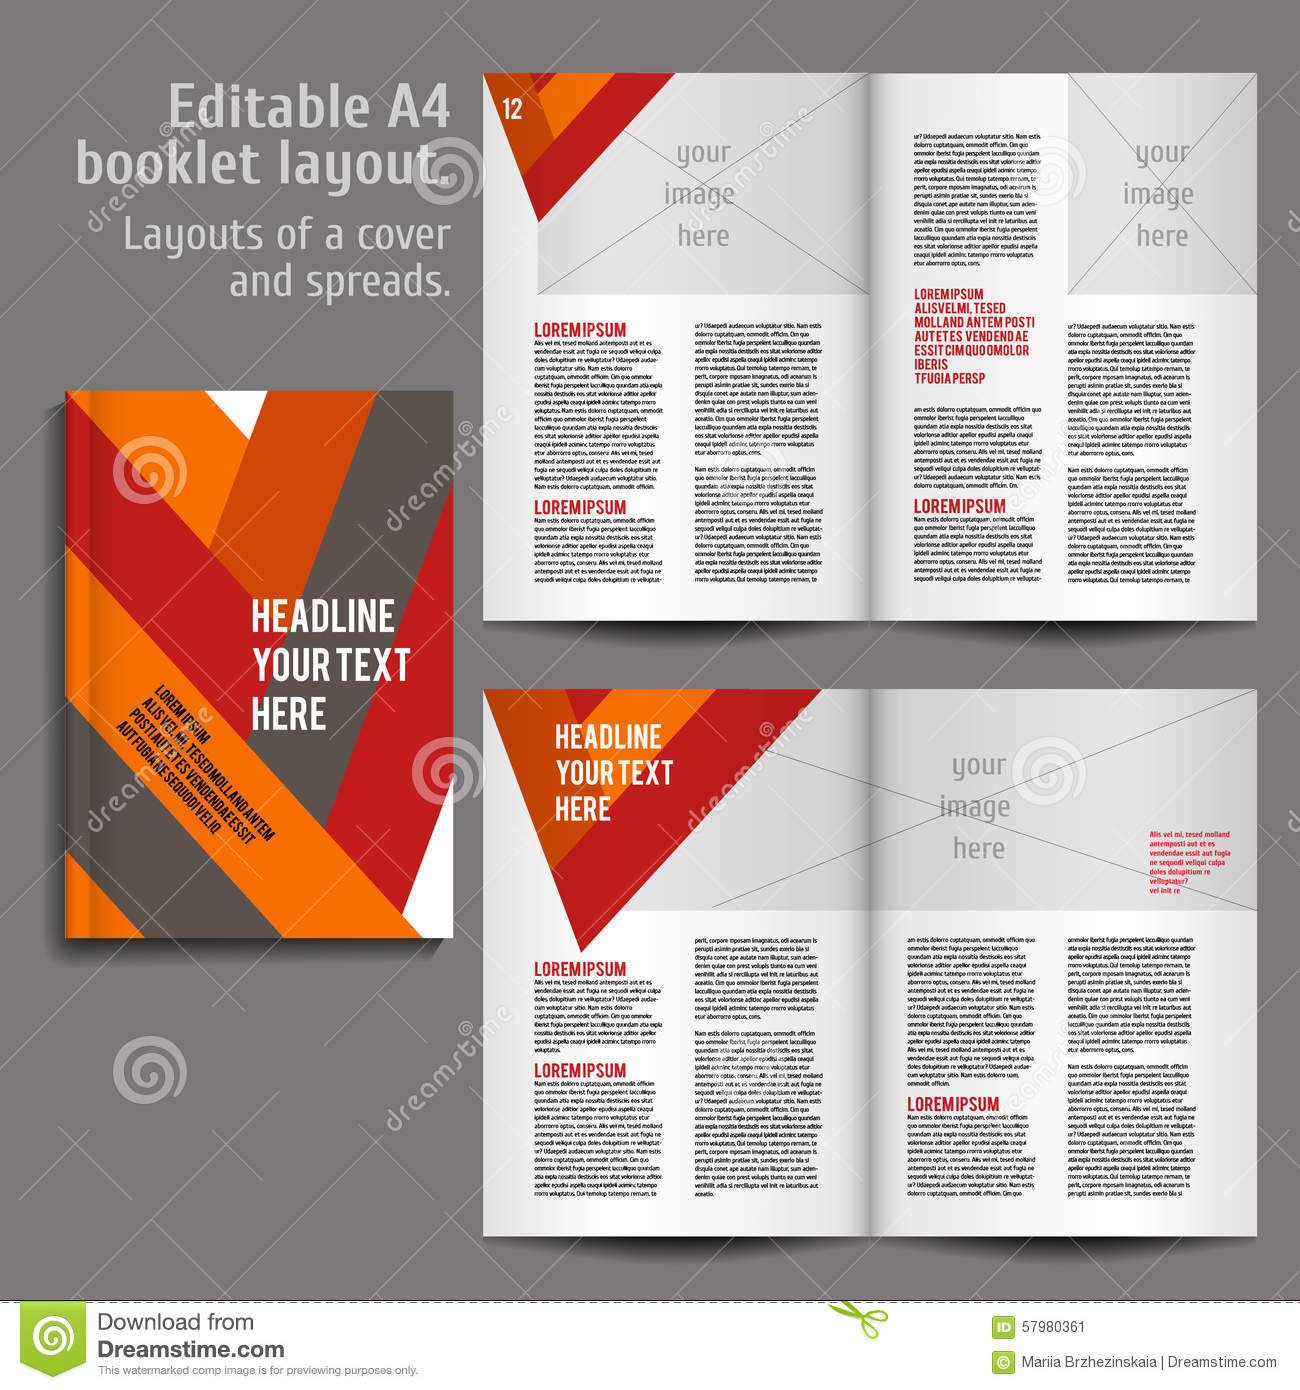 a4 book layout design template stock vector illustration of